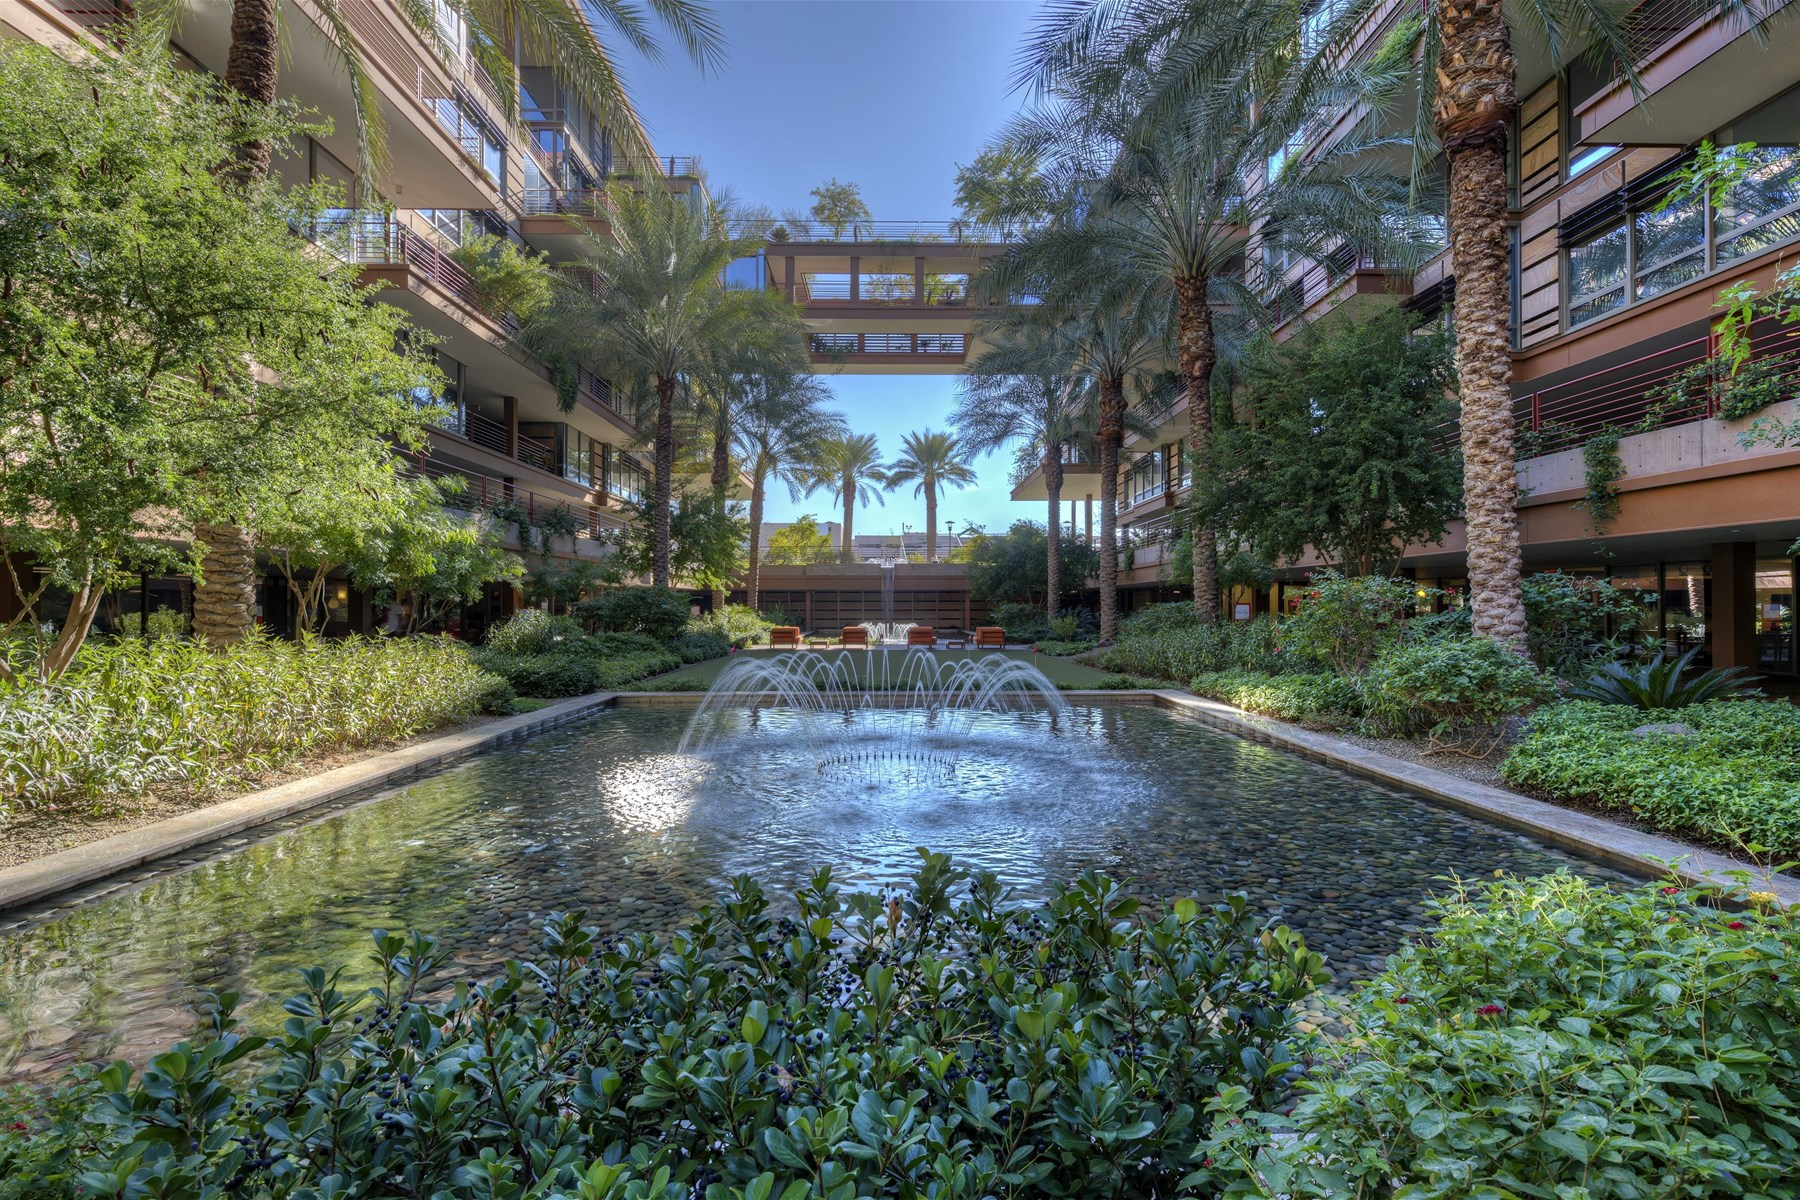 アパート のために 売買 アット Experience the art of urban luxury condo living in the Optima Camelview Village 7157 E Rancho Vista Dr #4011 Scottsdale, アリゾナ, 85251 アメリカ合衆国